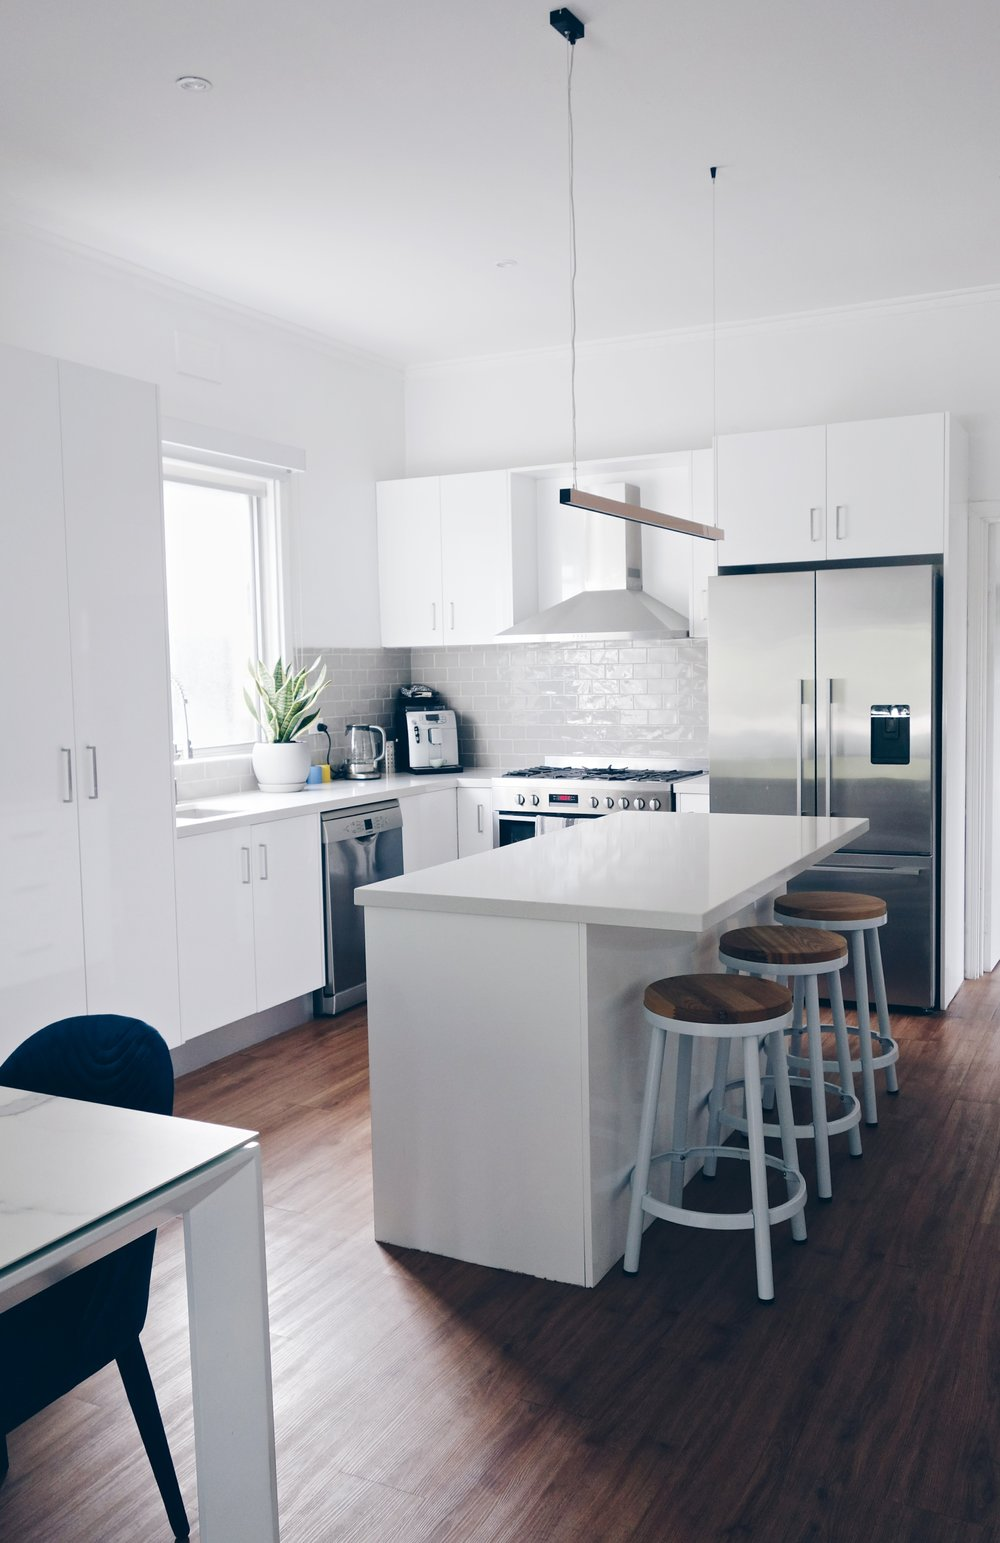 The modern kitchen provides a great spot for Adrian to entertain & cook for his friends. I really like the subway tile backsplash he has chosen. It's neutral &creates texture when the light hits it. You can't go wrong with white cabinetry.